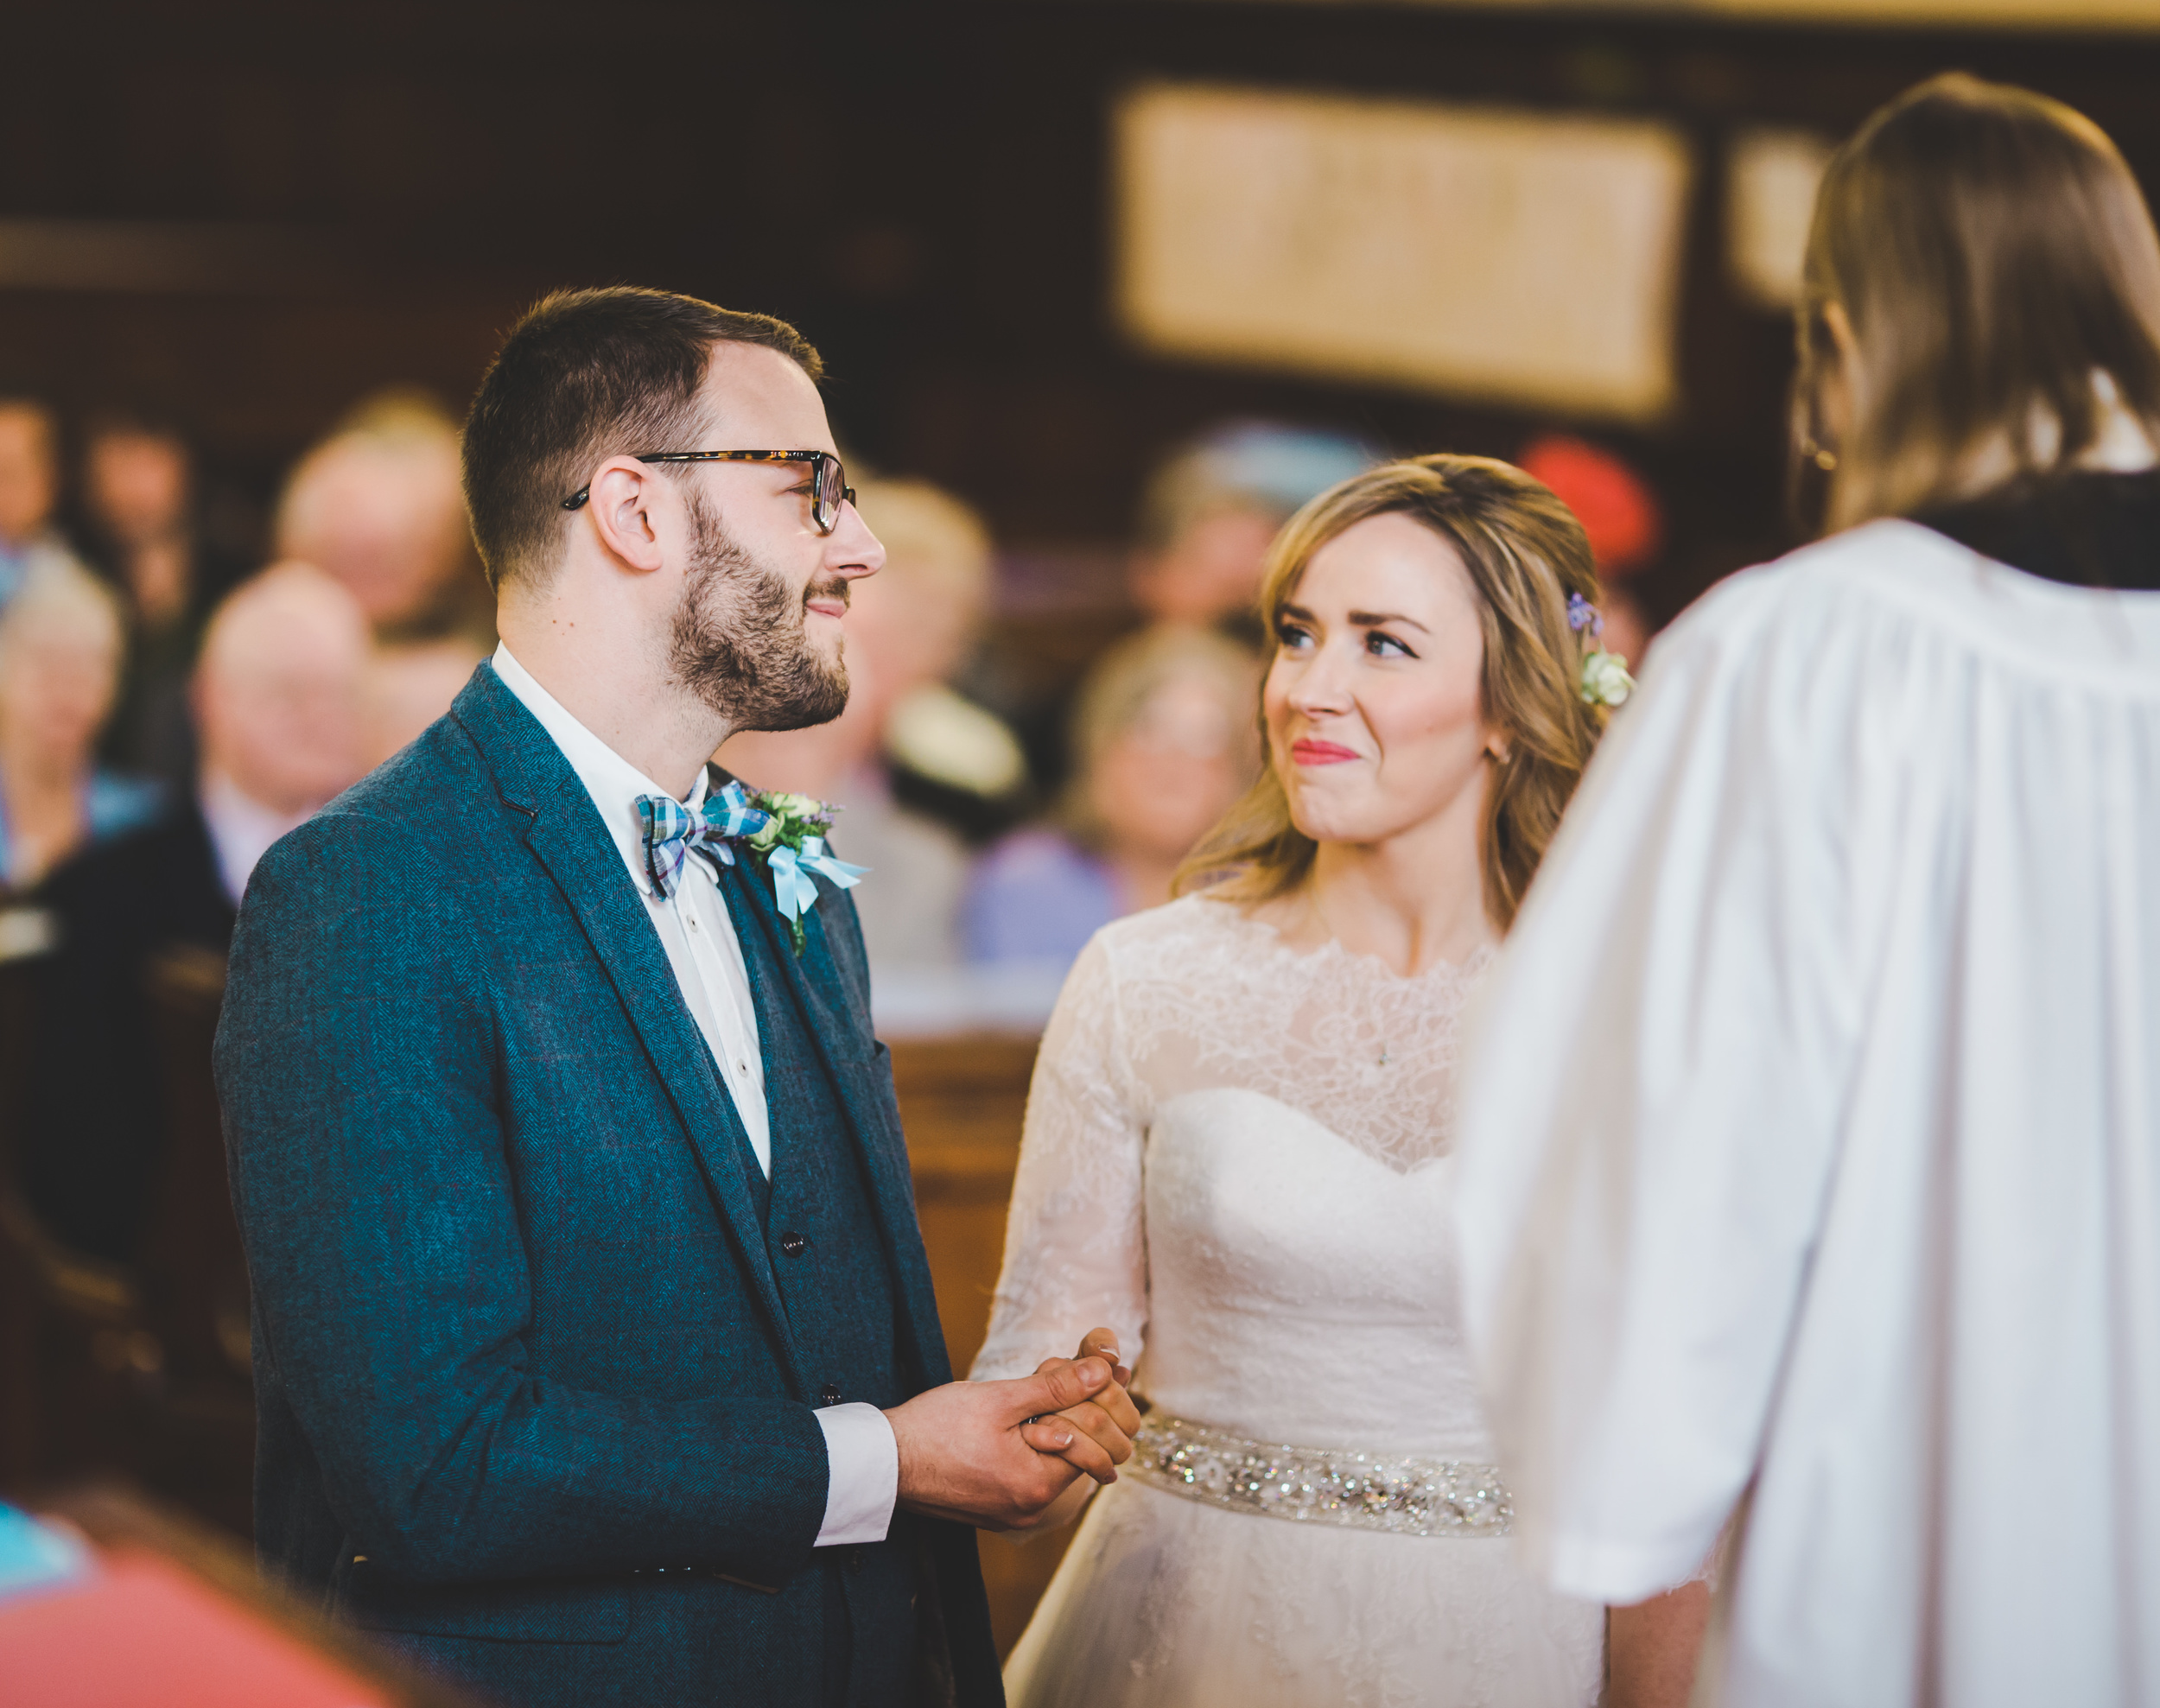 exchanging vows - wedding photographer cheshire